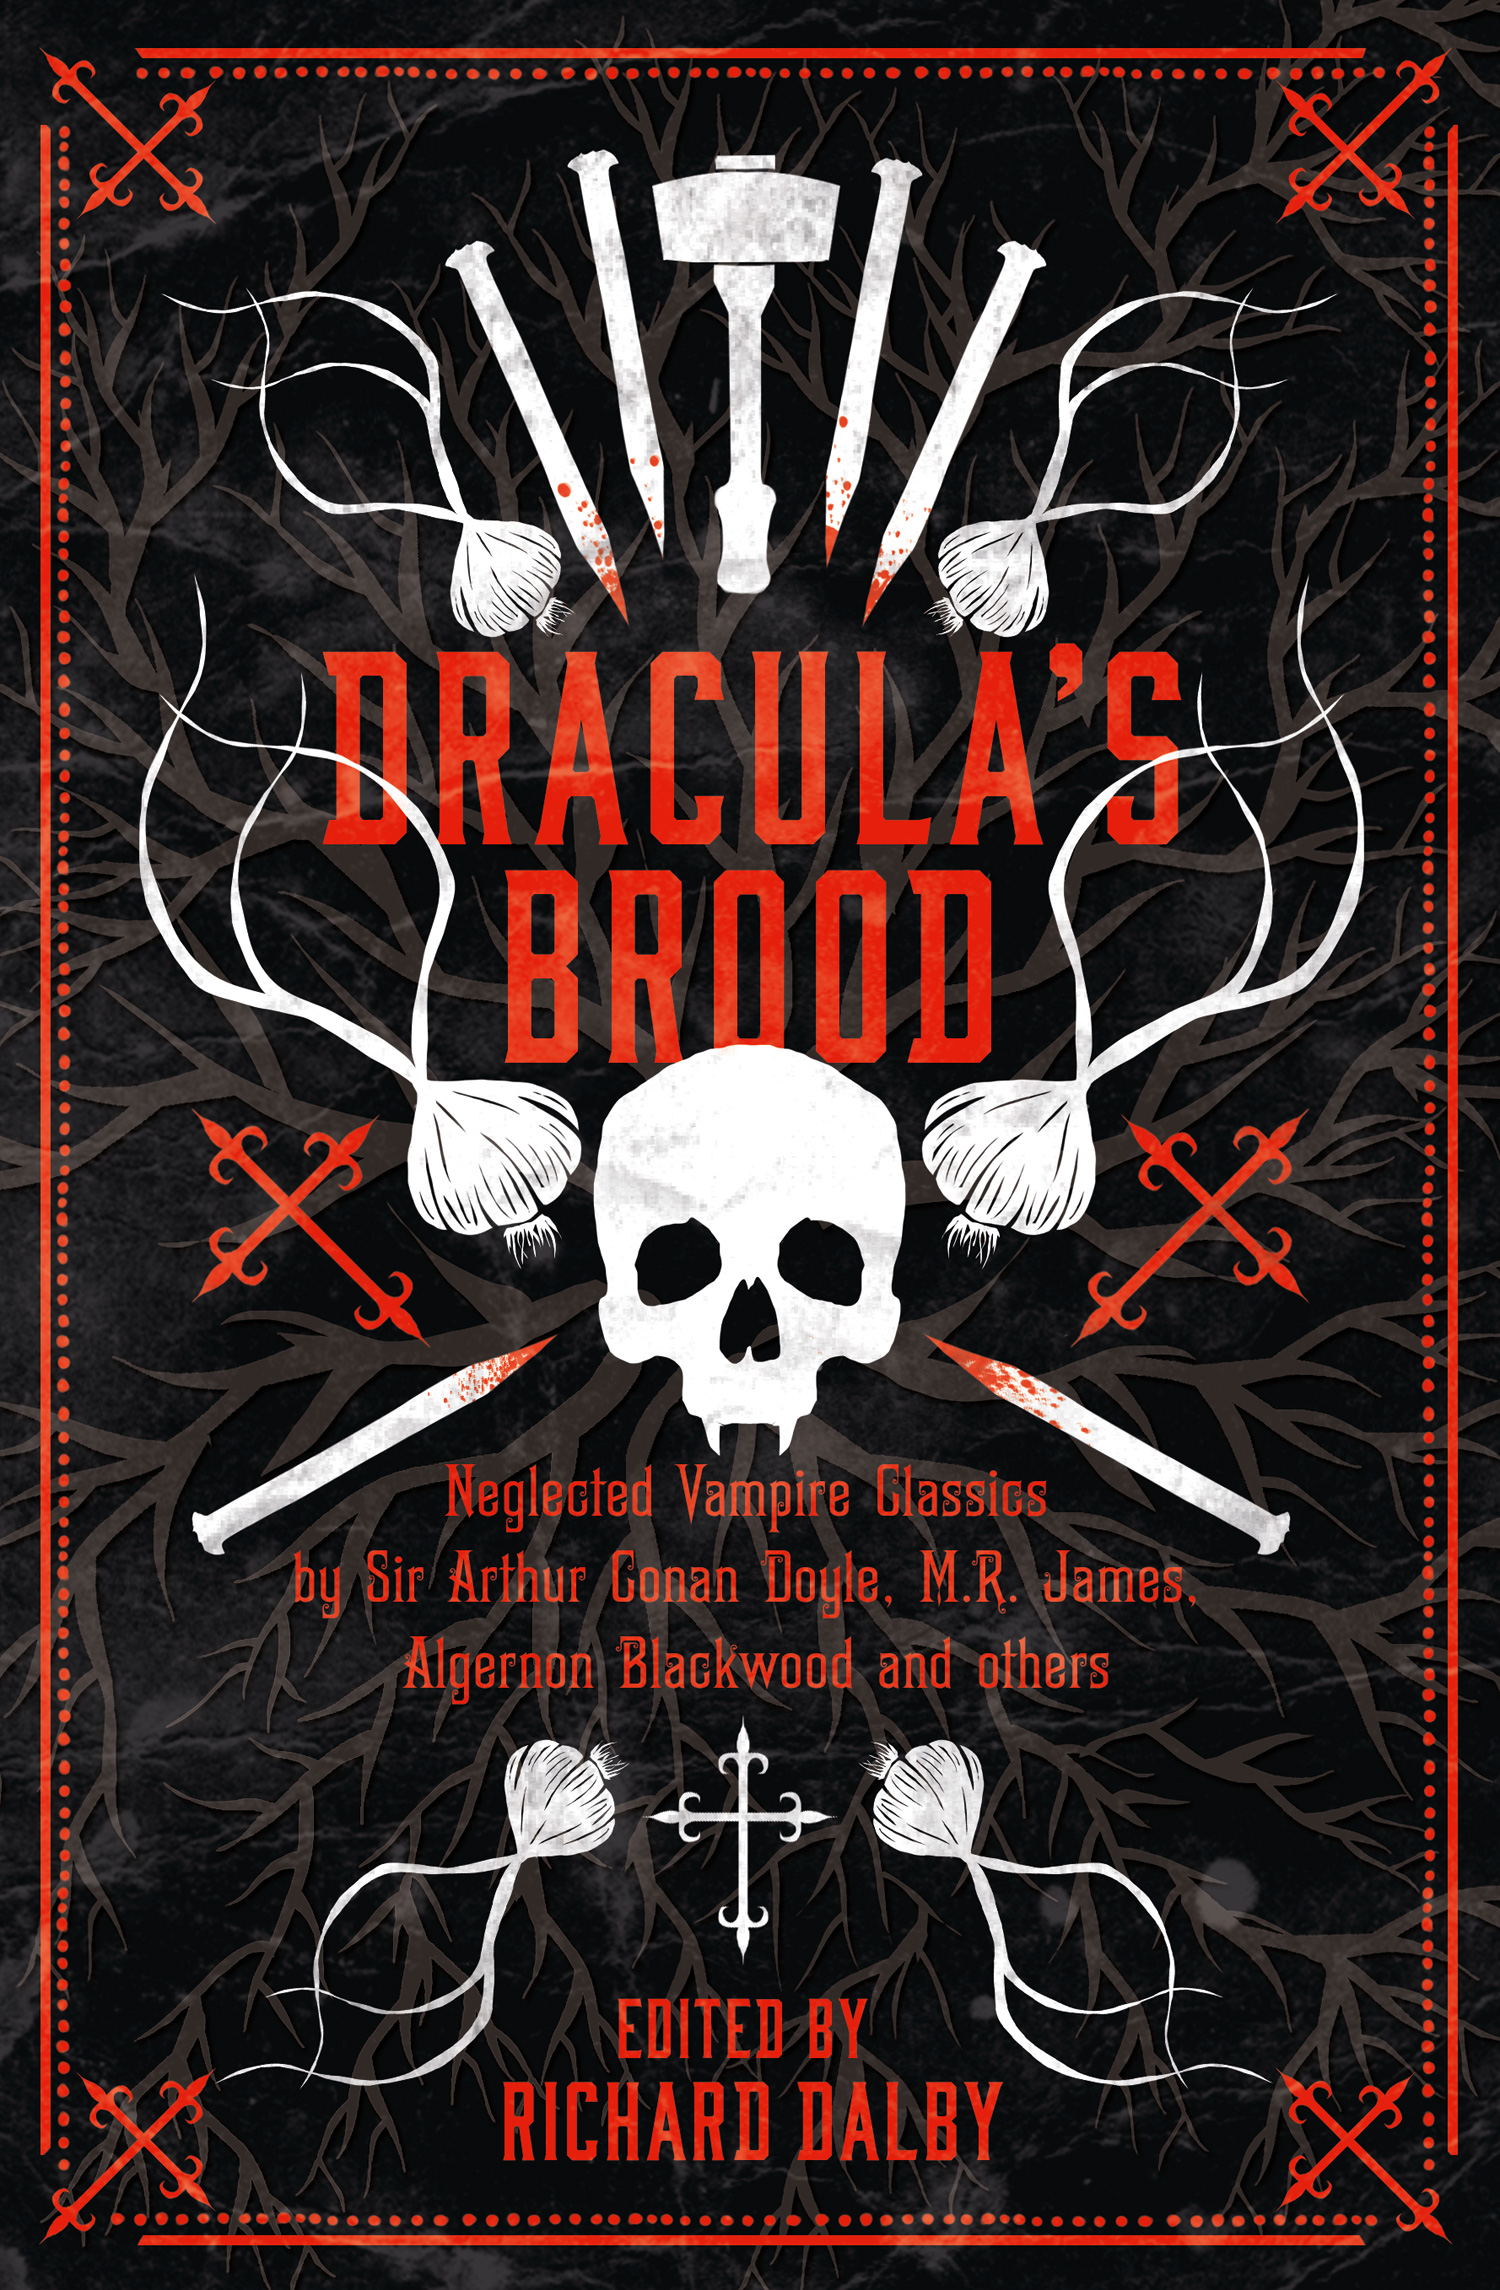 Draculas Brood: Neglected Vampire Classics by Sir Arthur Conan Doyle, M.R. James, Algernon Blackwood and Others